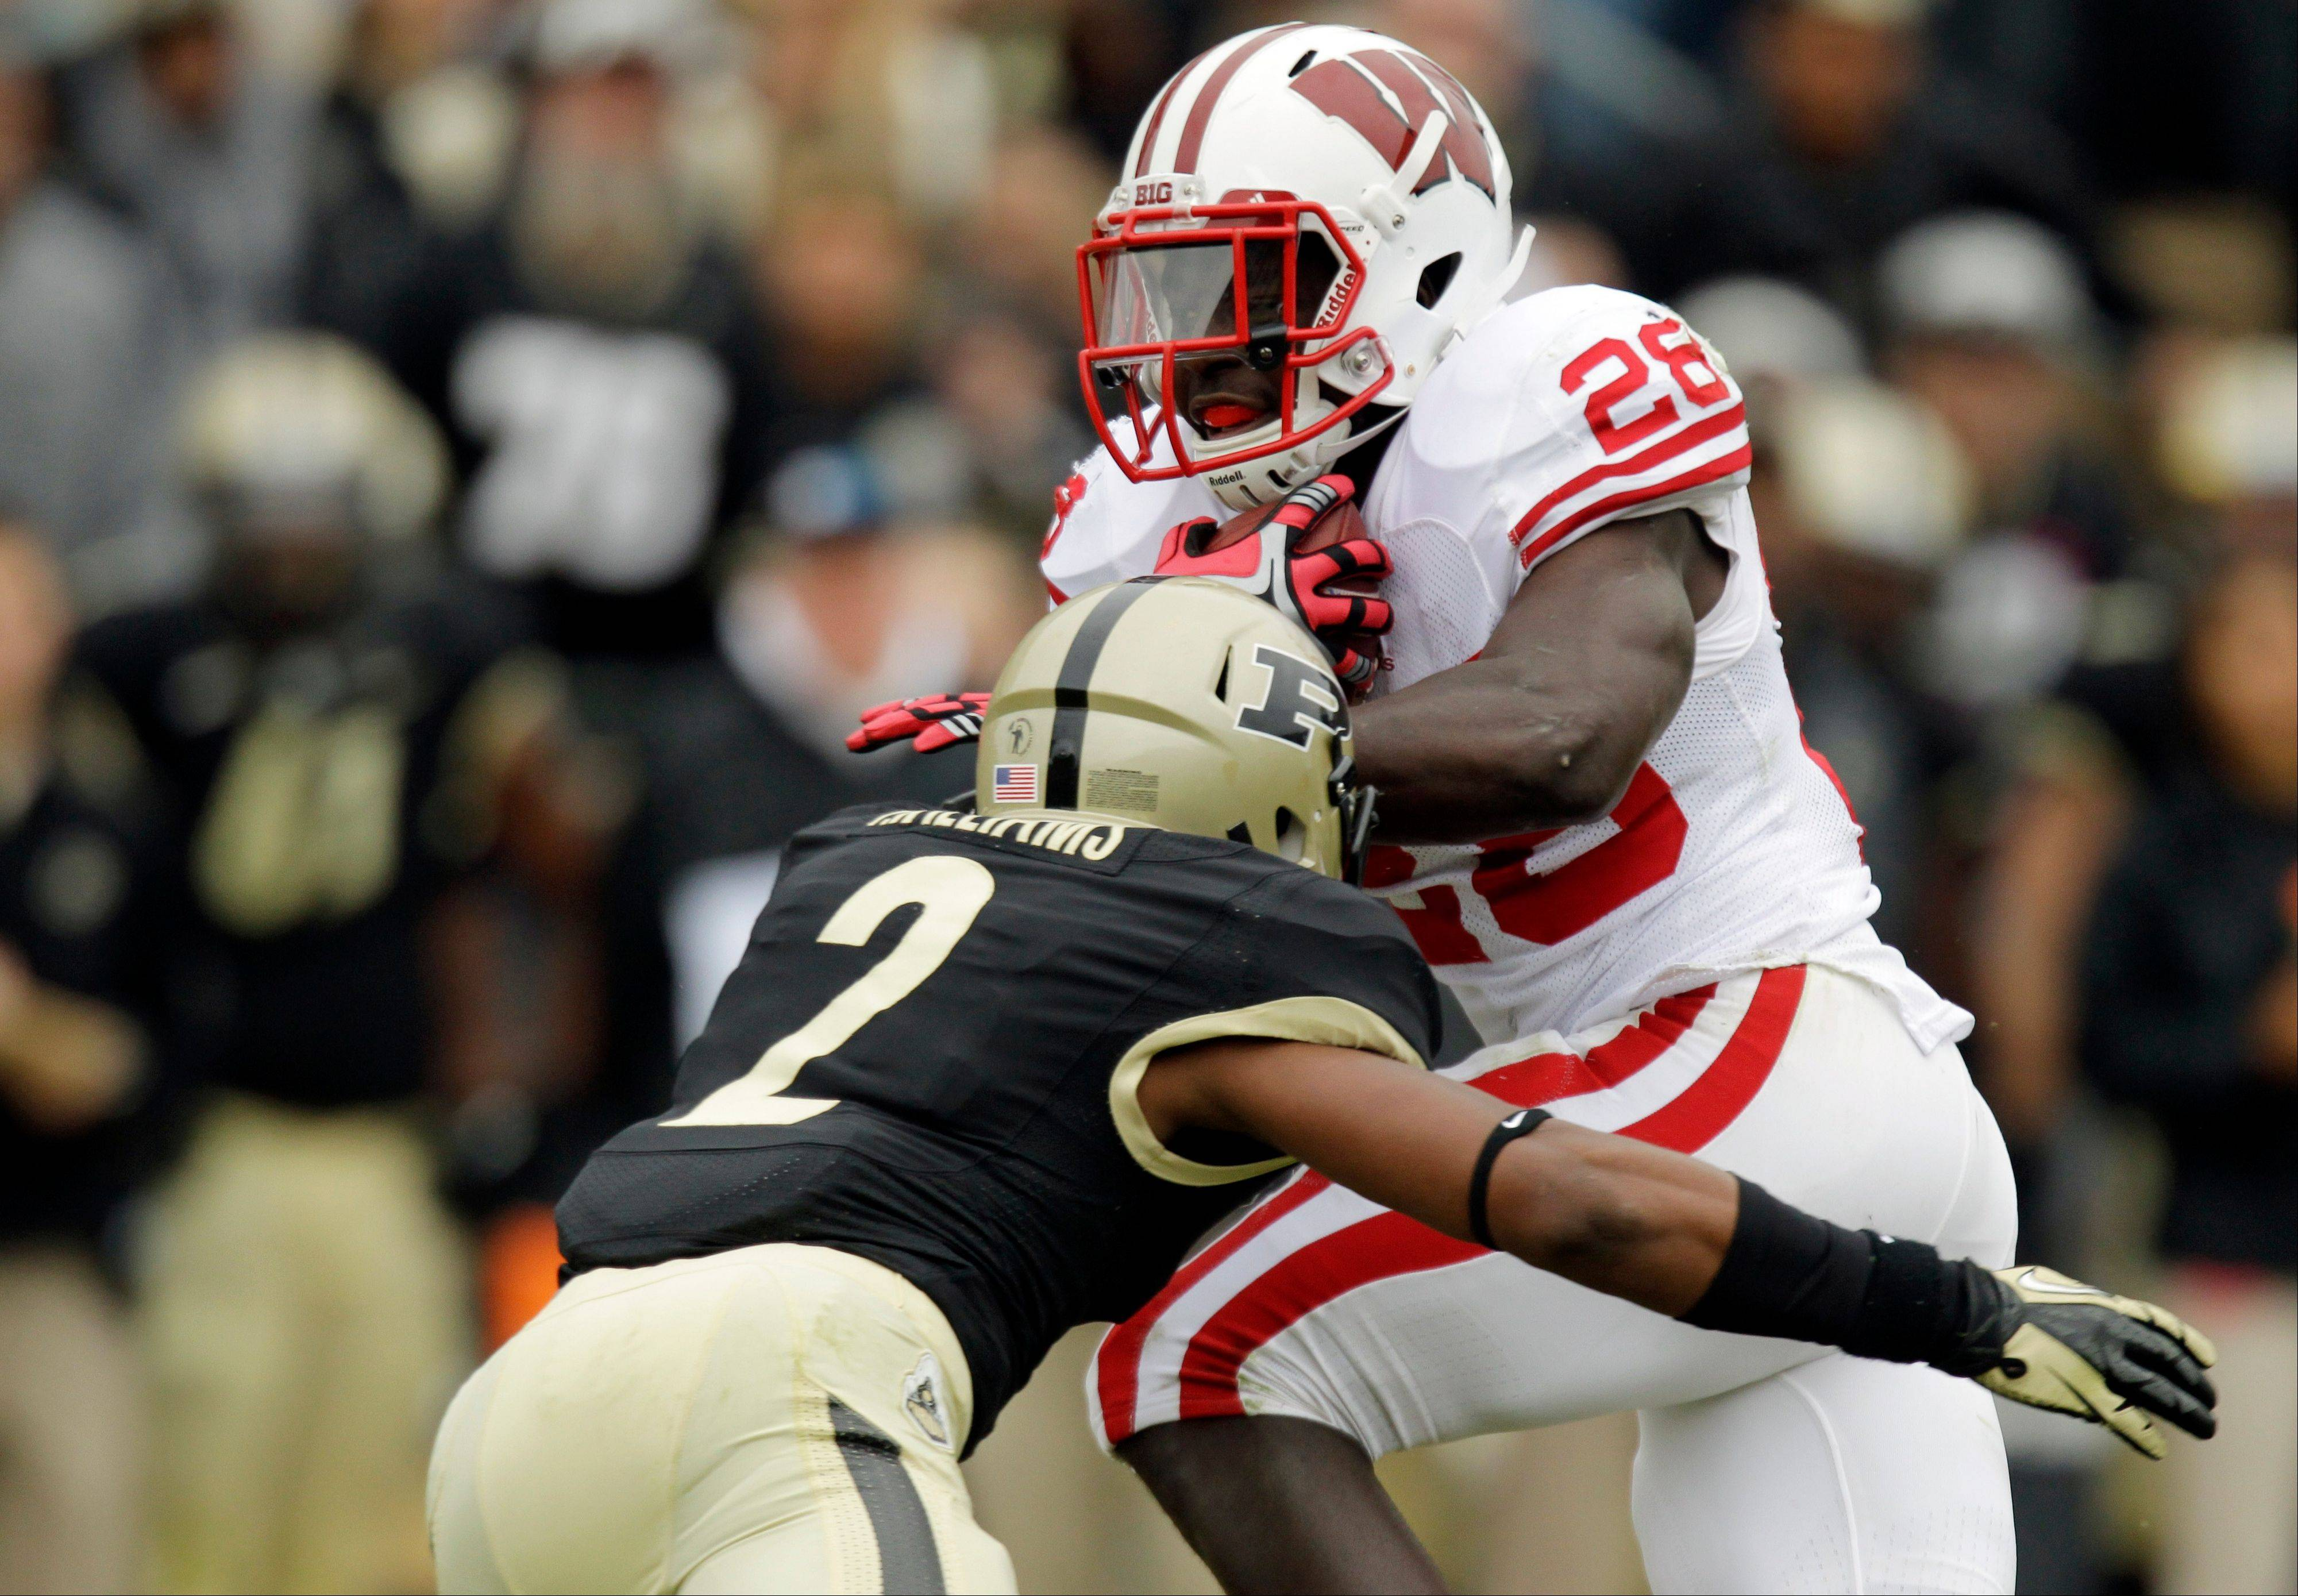 Wisconsin running back Montee Ball runs through the tackle of Purdue defensive back Frankie Williams during the first half of last Saturday's game in West Lafayette, Ind.